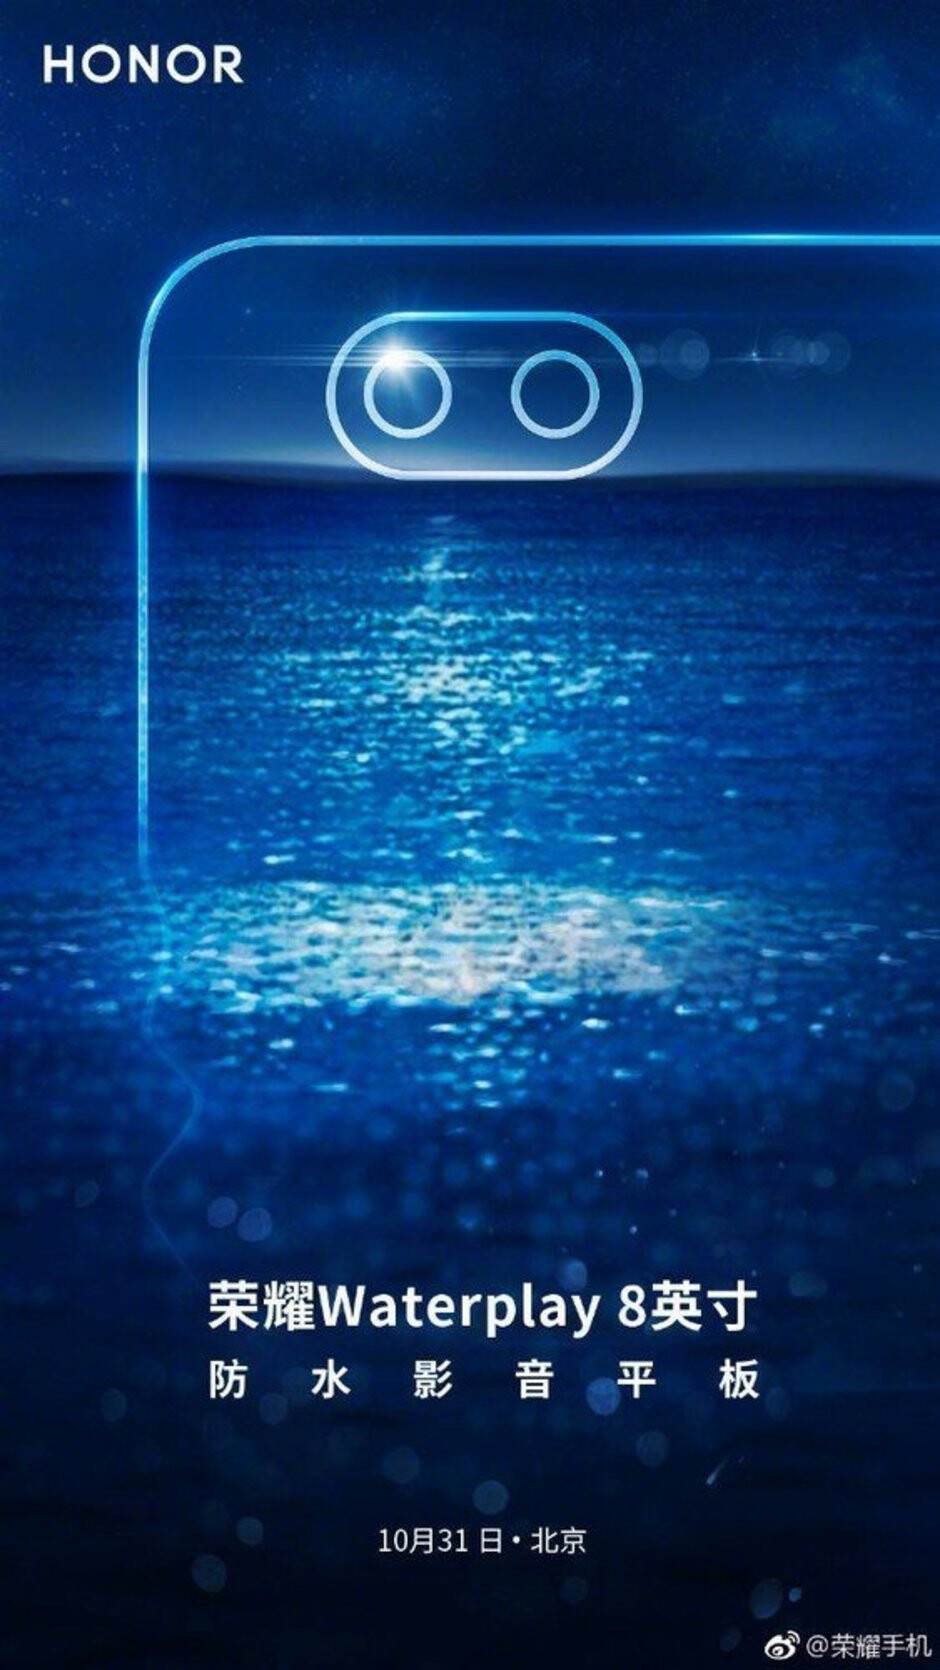 Honor Waterplay 8 tablet and FlyPods earbuds to be unveiled on October 31